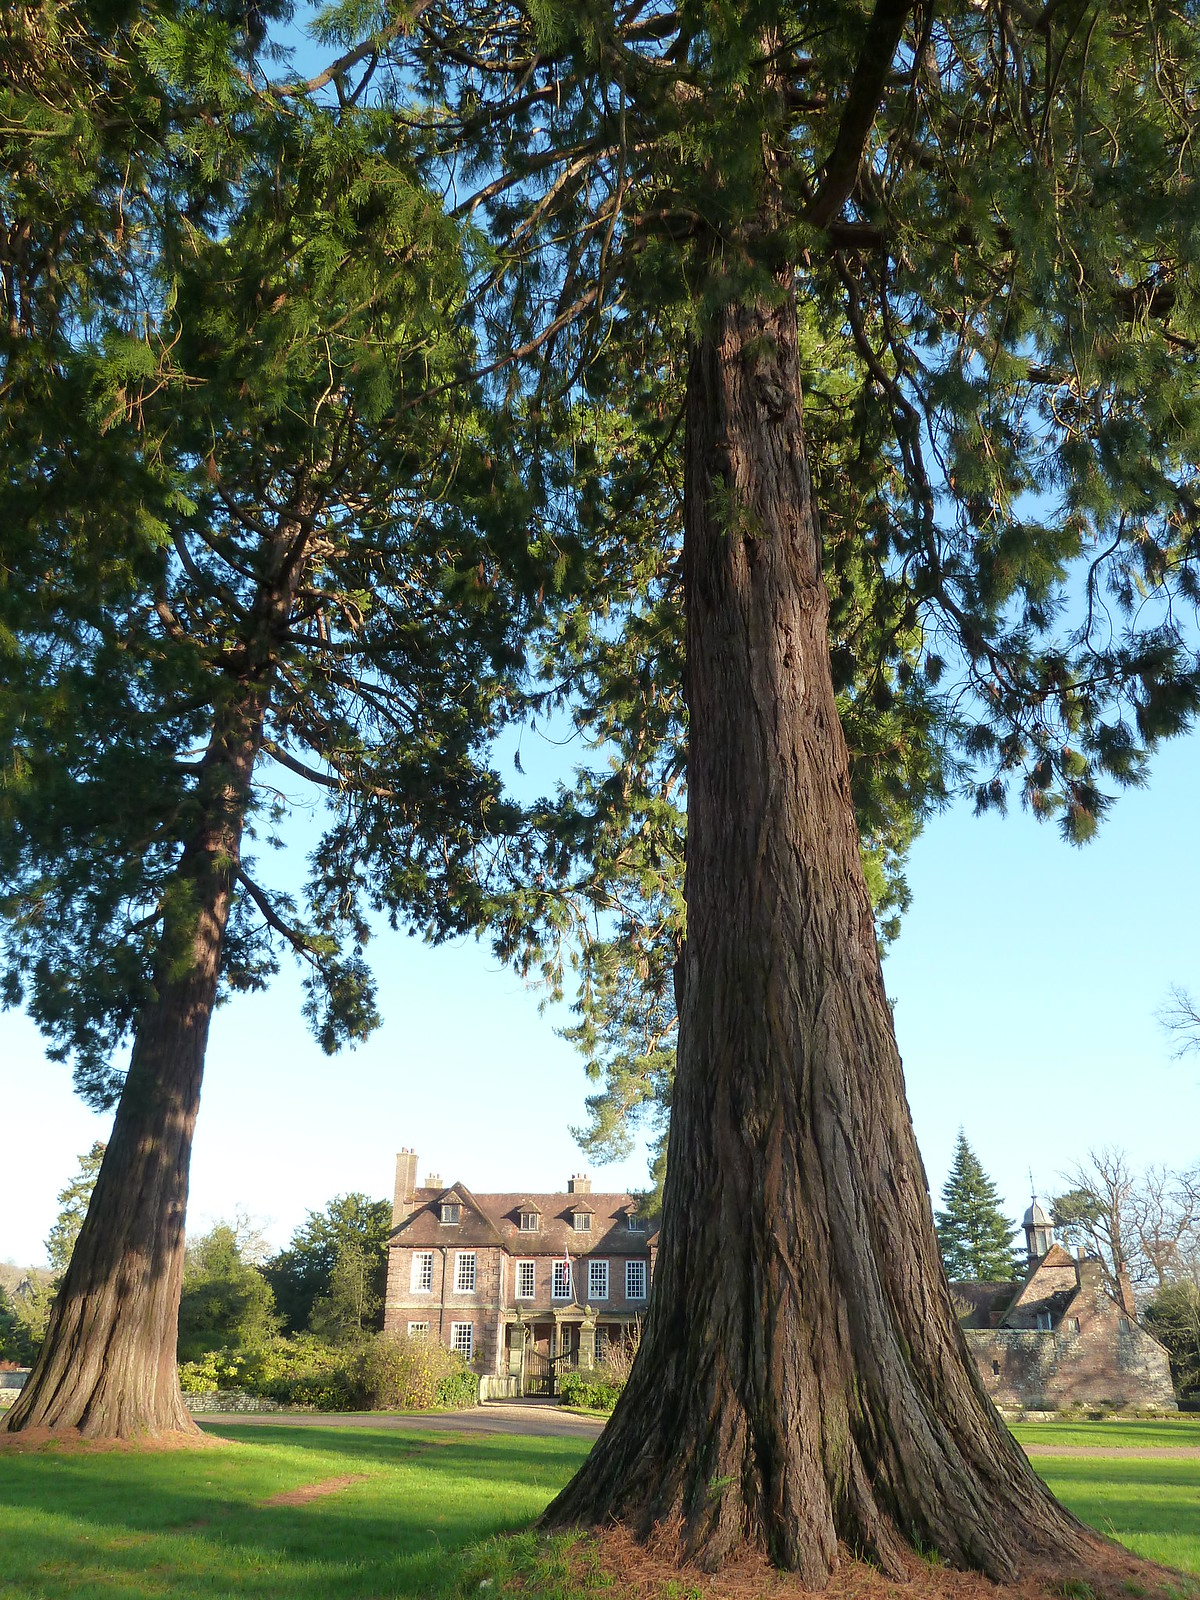 Redwoods at Groombridge (Eridge Circular) 'The existence of a manor at Groombridge was first recorded in 1286 when it belonged to the de Cobhams.' (English Heritage, list entry number: 1000933).